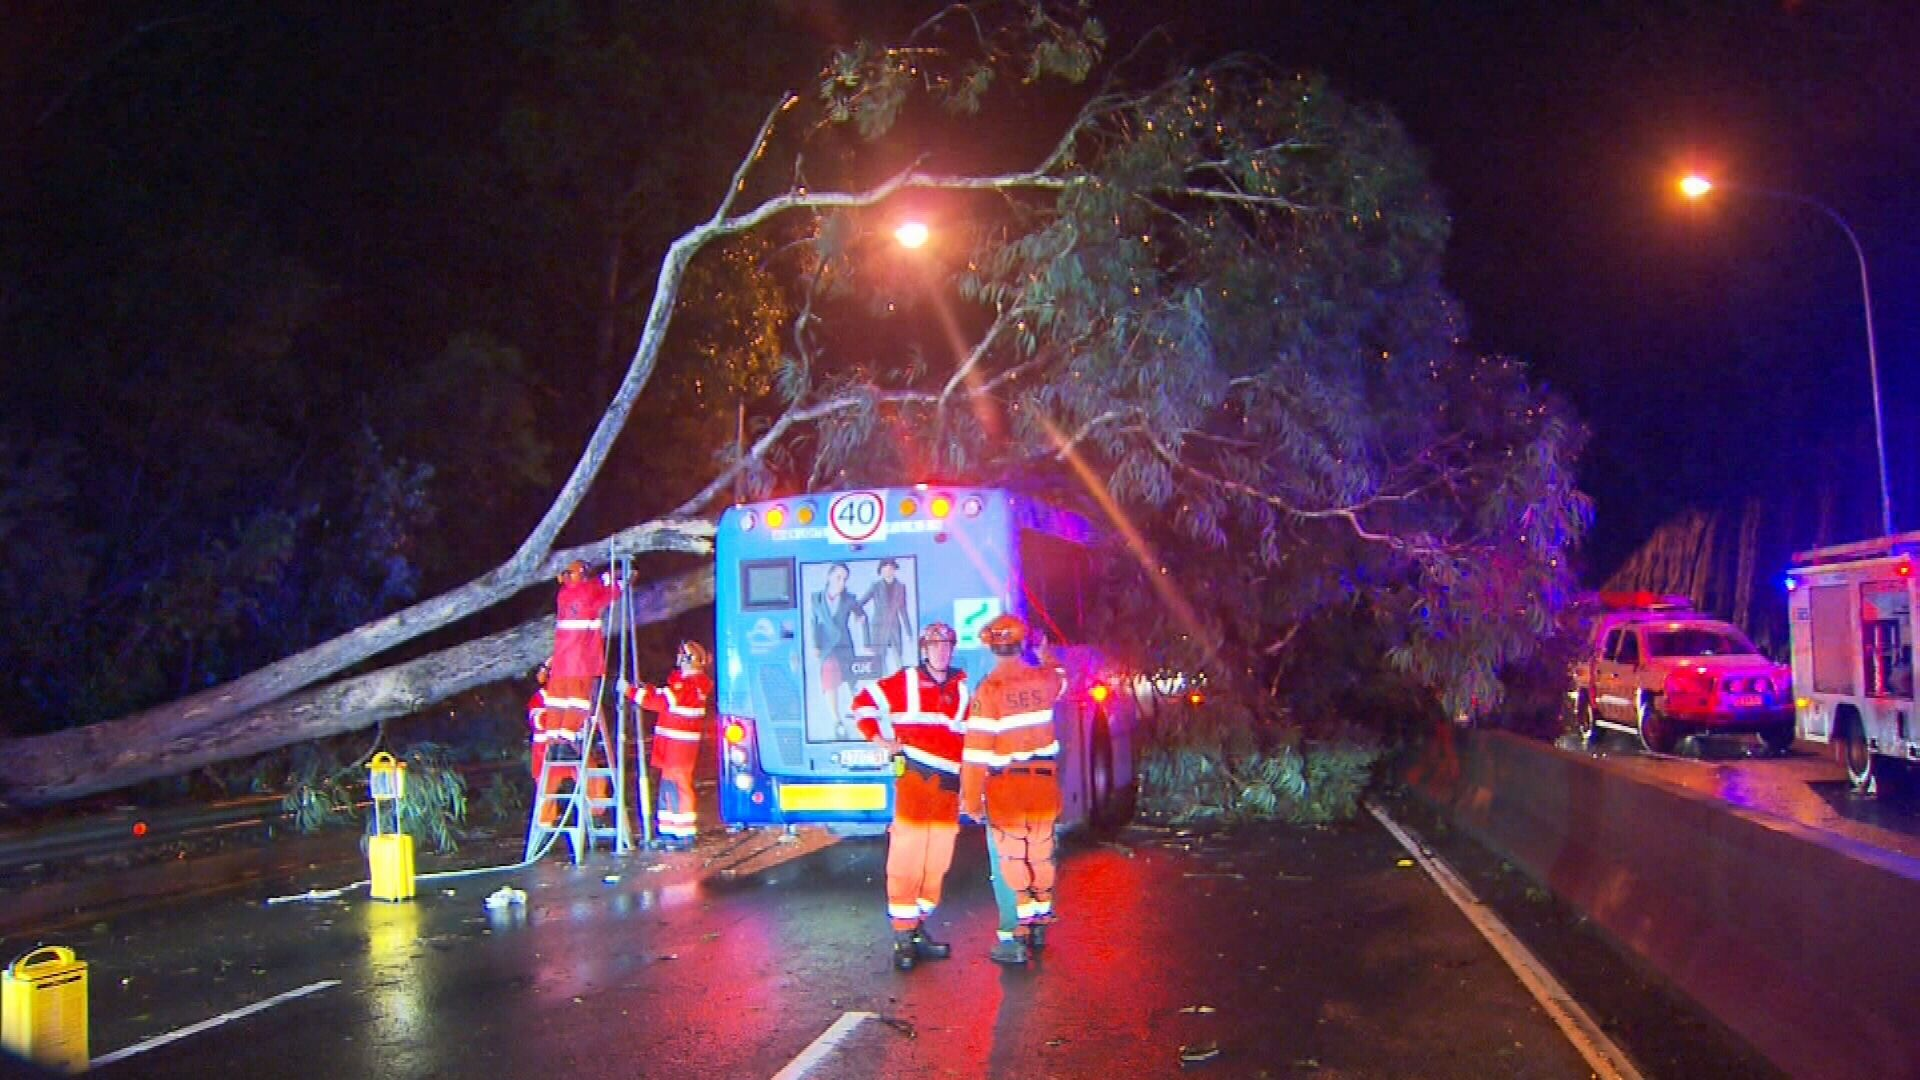 Tens of thousands without power after deadly storm